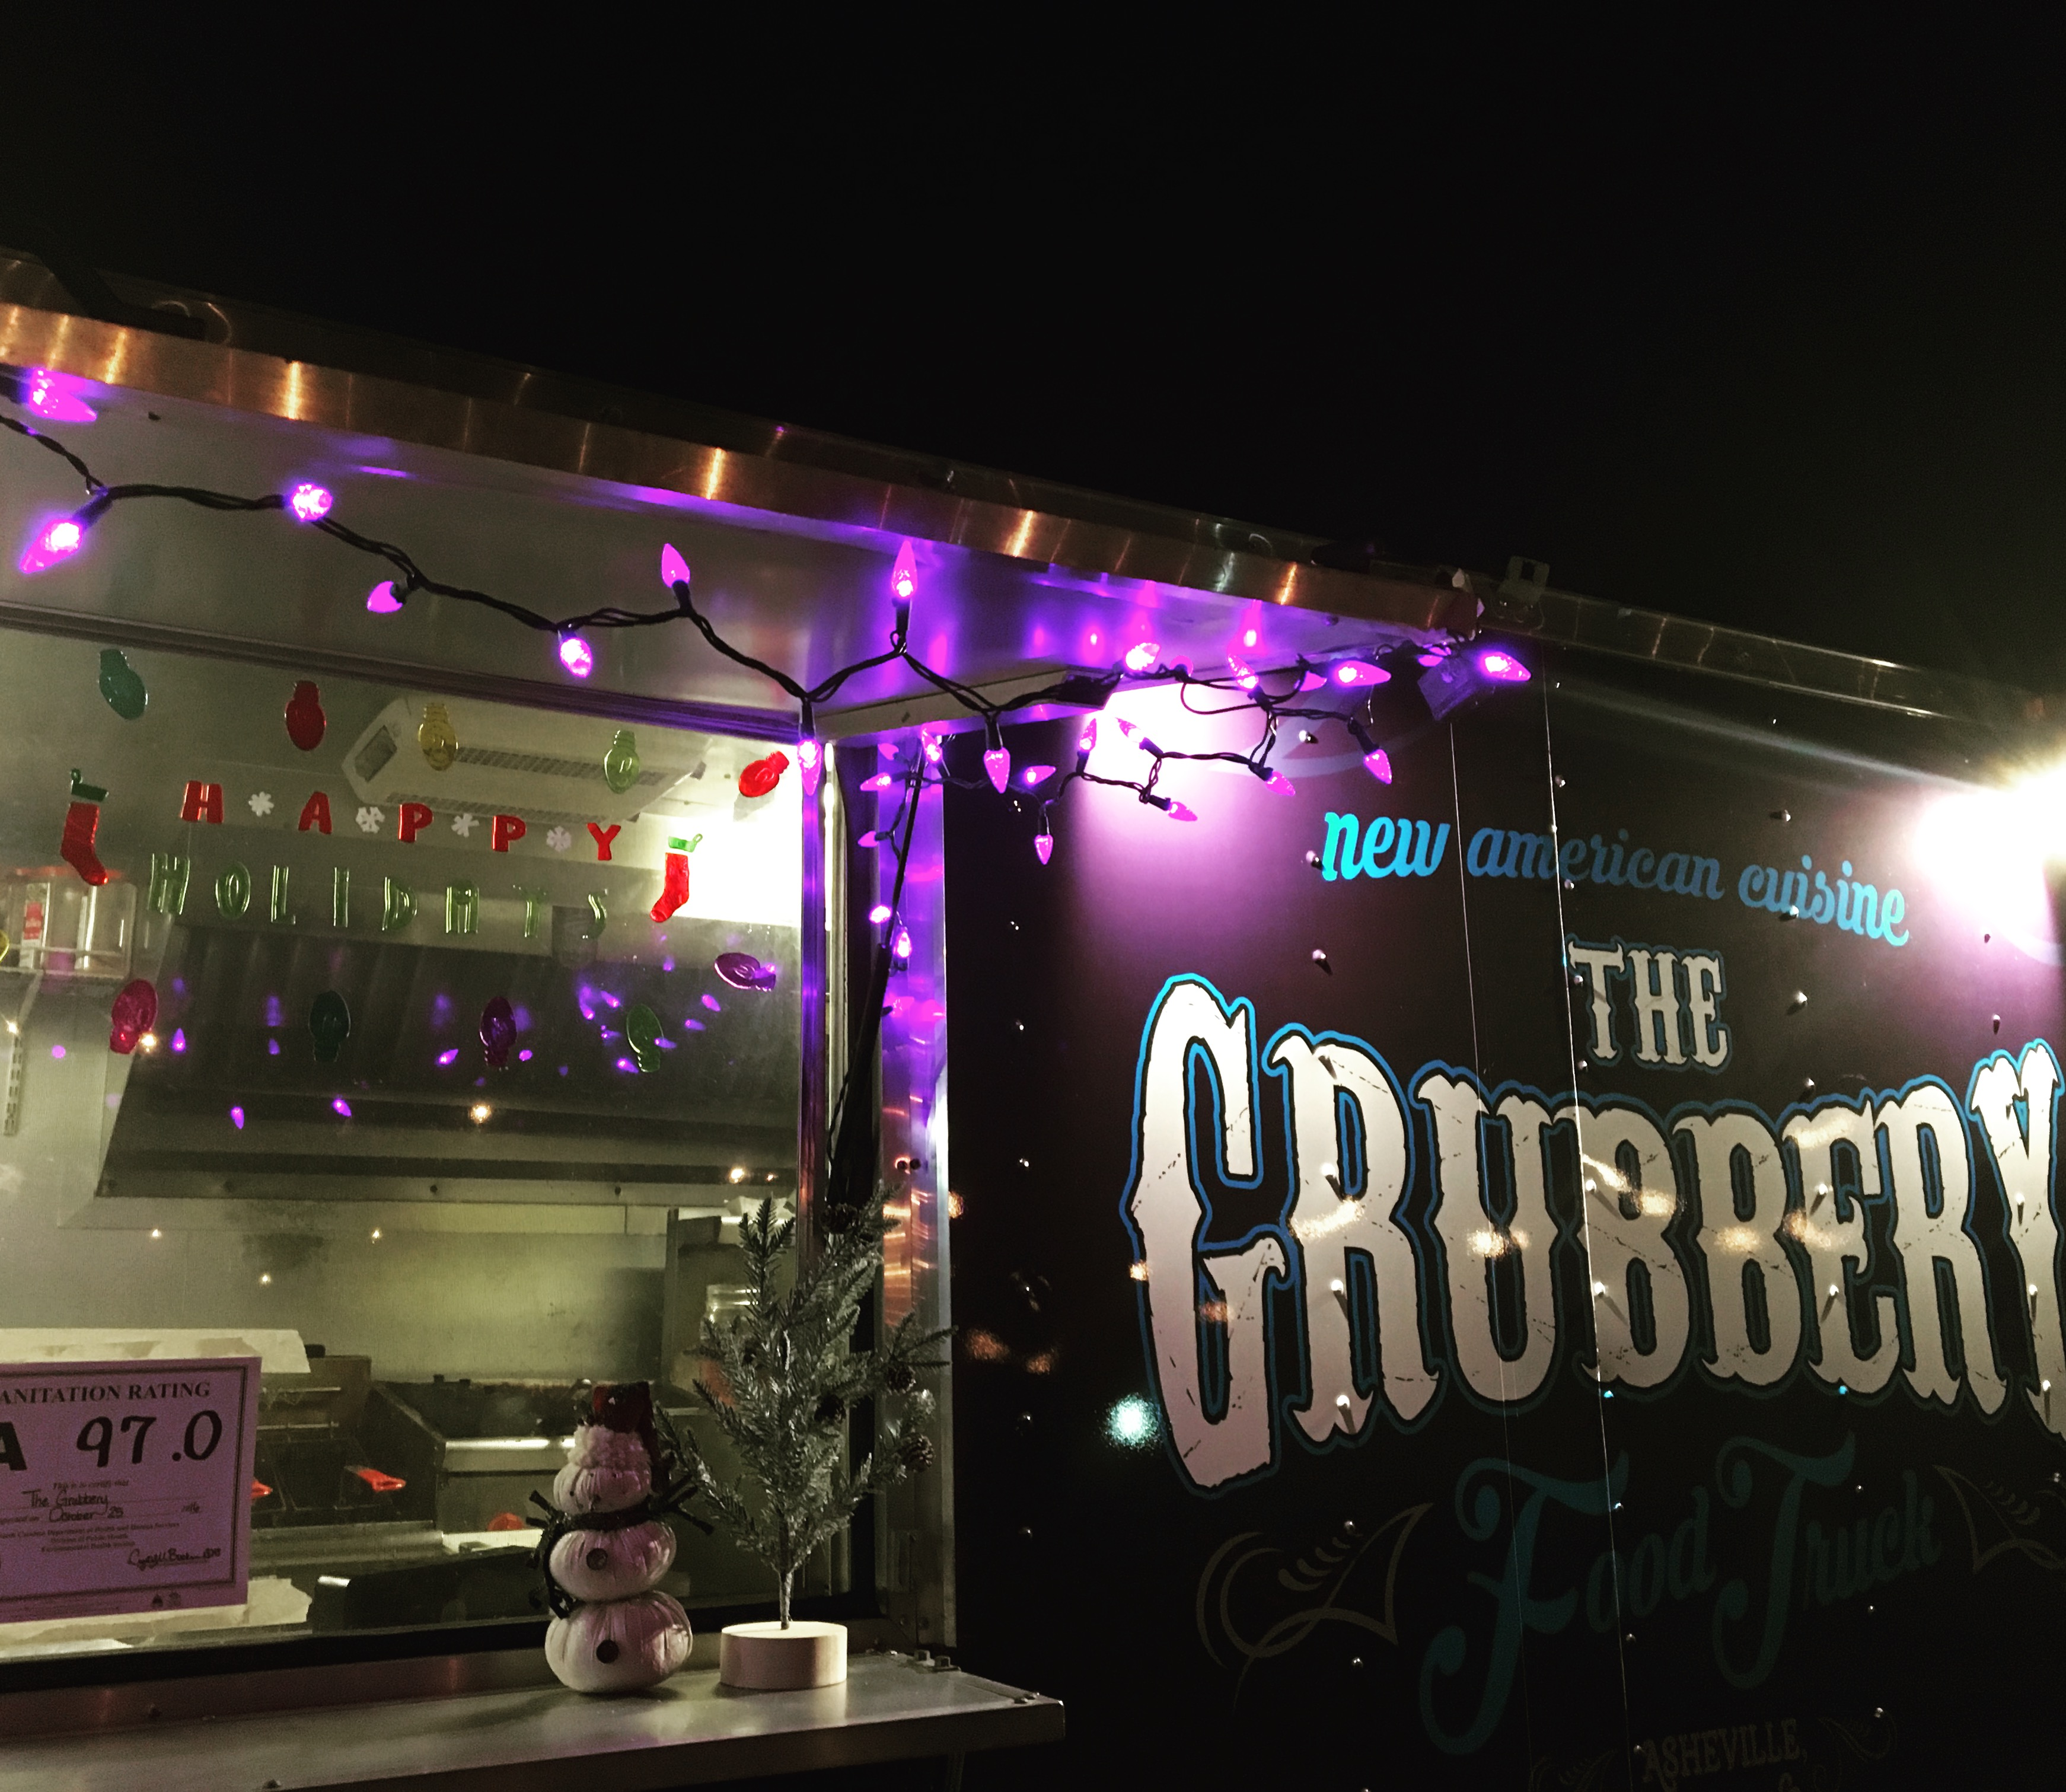 The grubbery food truck 1490111978 img 1007